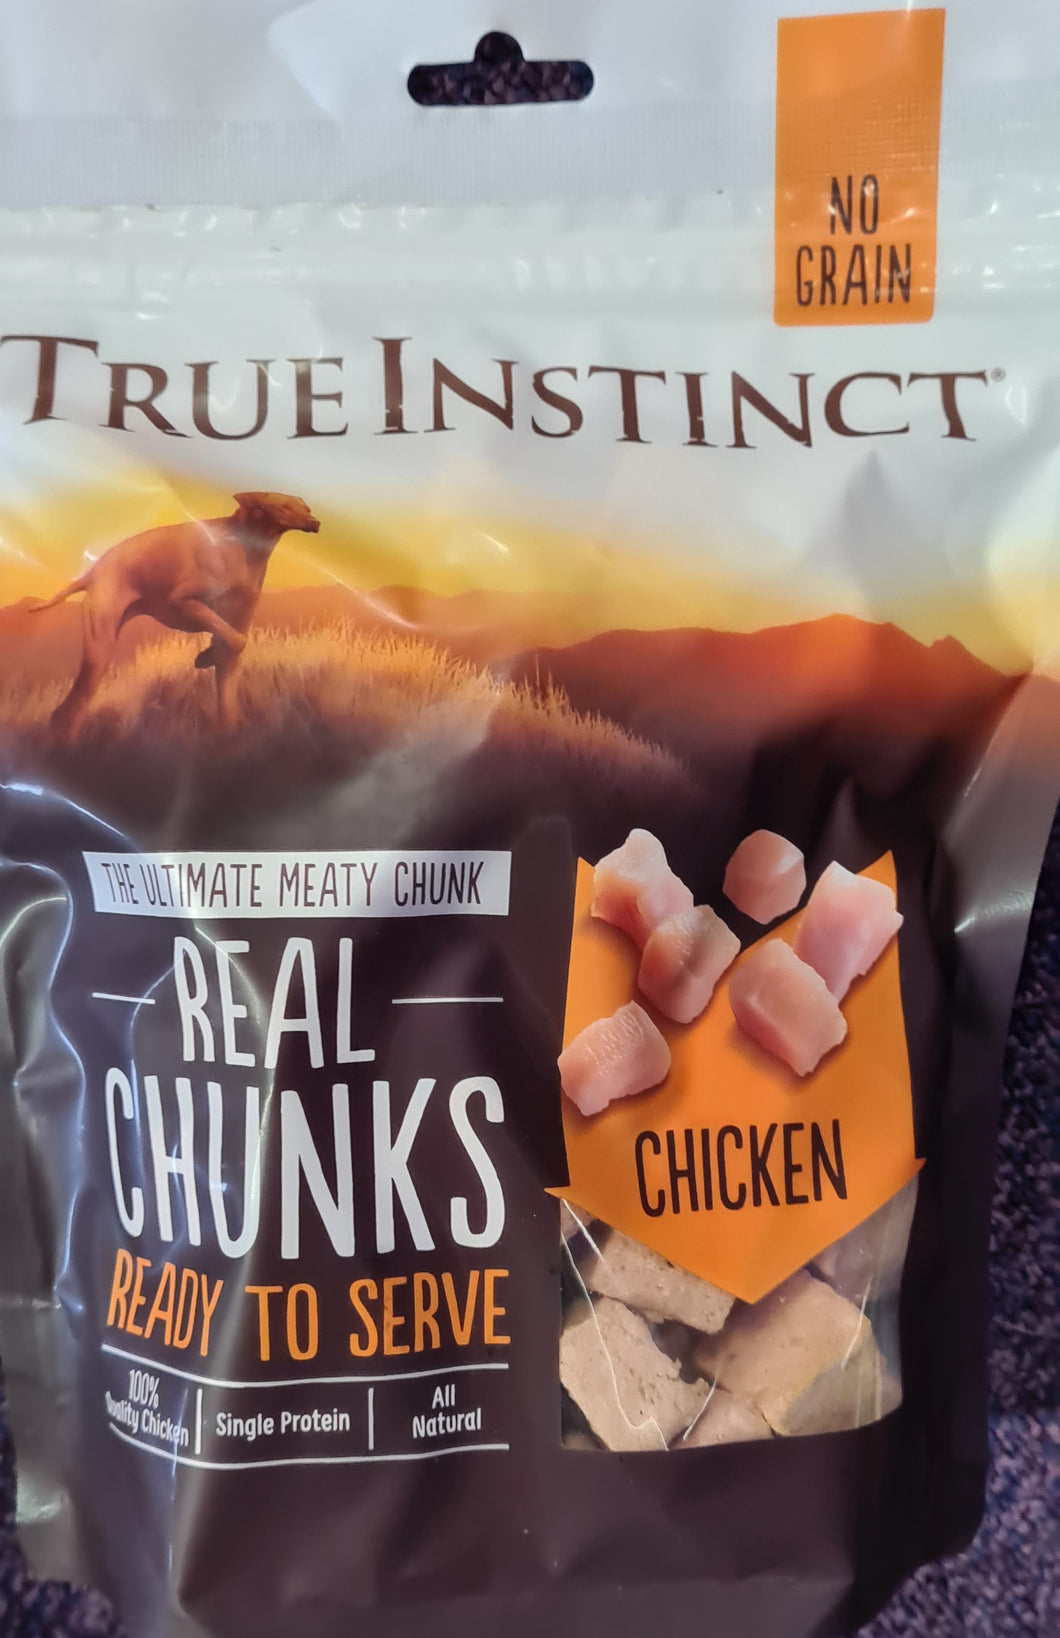 True Instinct Real Chunks Freeze Dried. Chicken. 250g - Food for dogs, cats and other pets online | Northampton Raw Dog Food!